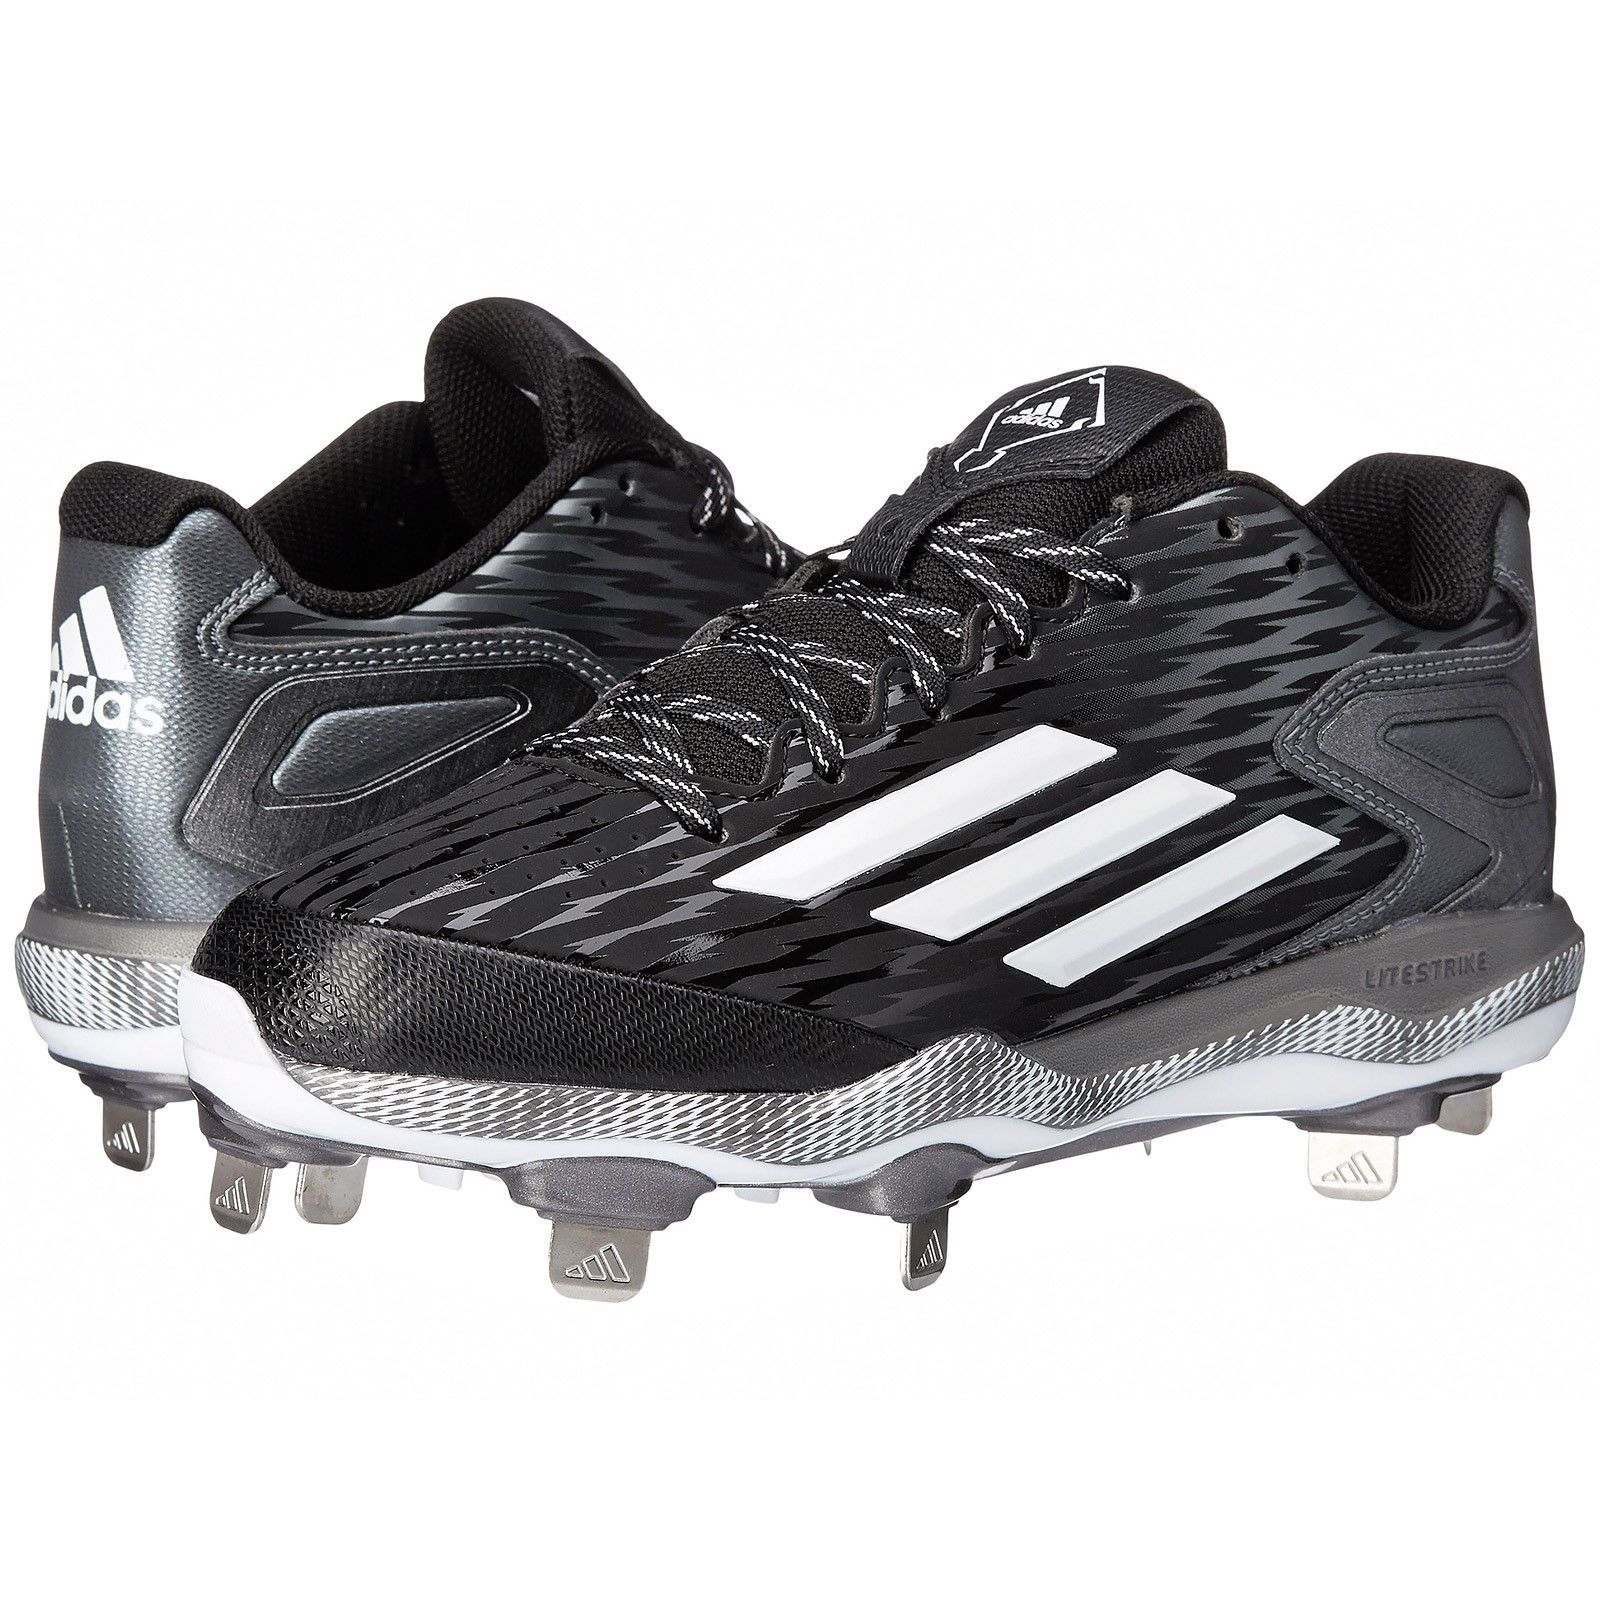 4739232fefcad New Adidas Power Alley 3 Low Metal Mens Baseball Shoes Cleats   Black